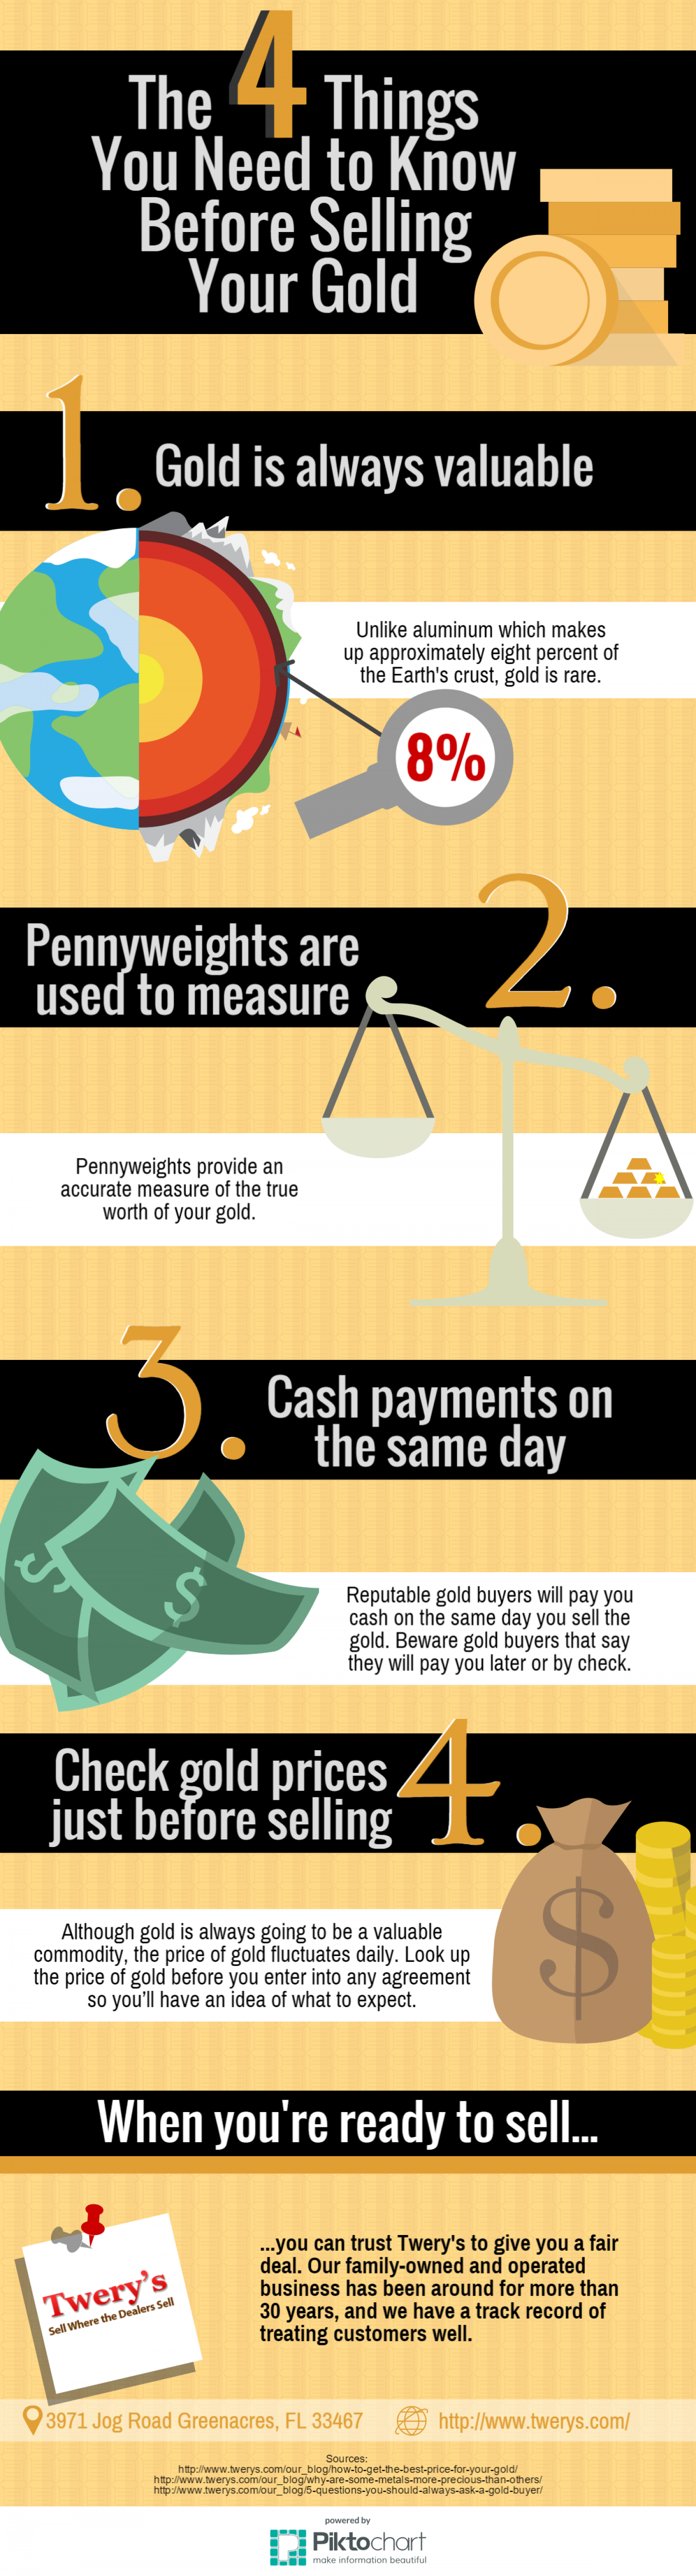 Four Things You Need to Know Before Selling Your Gold Infographic